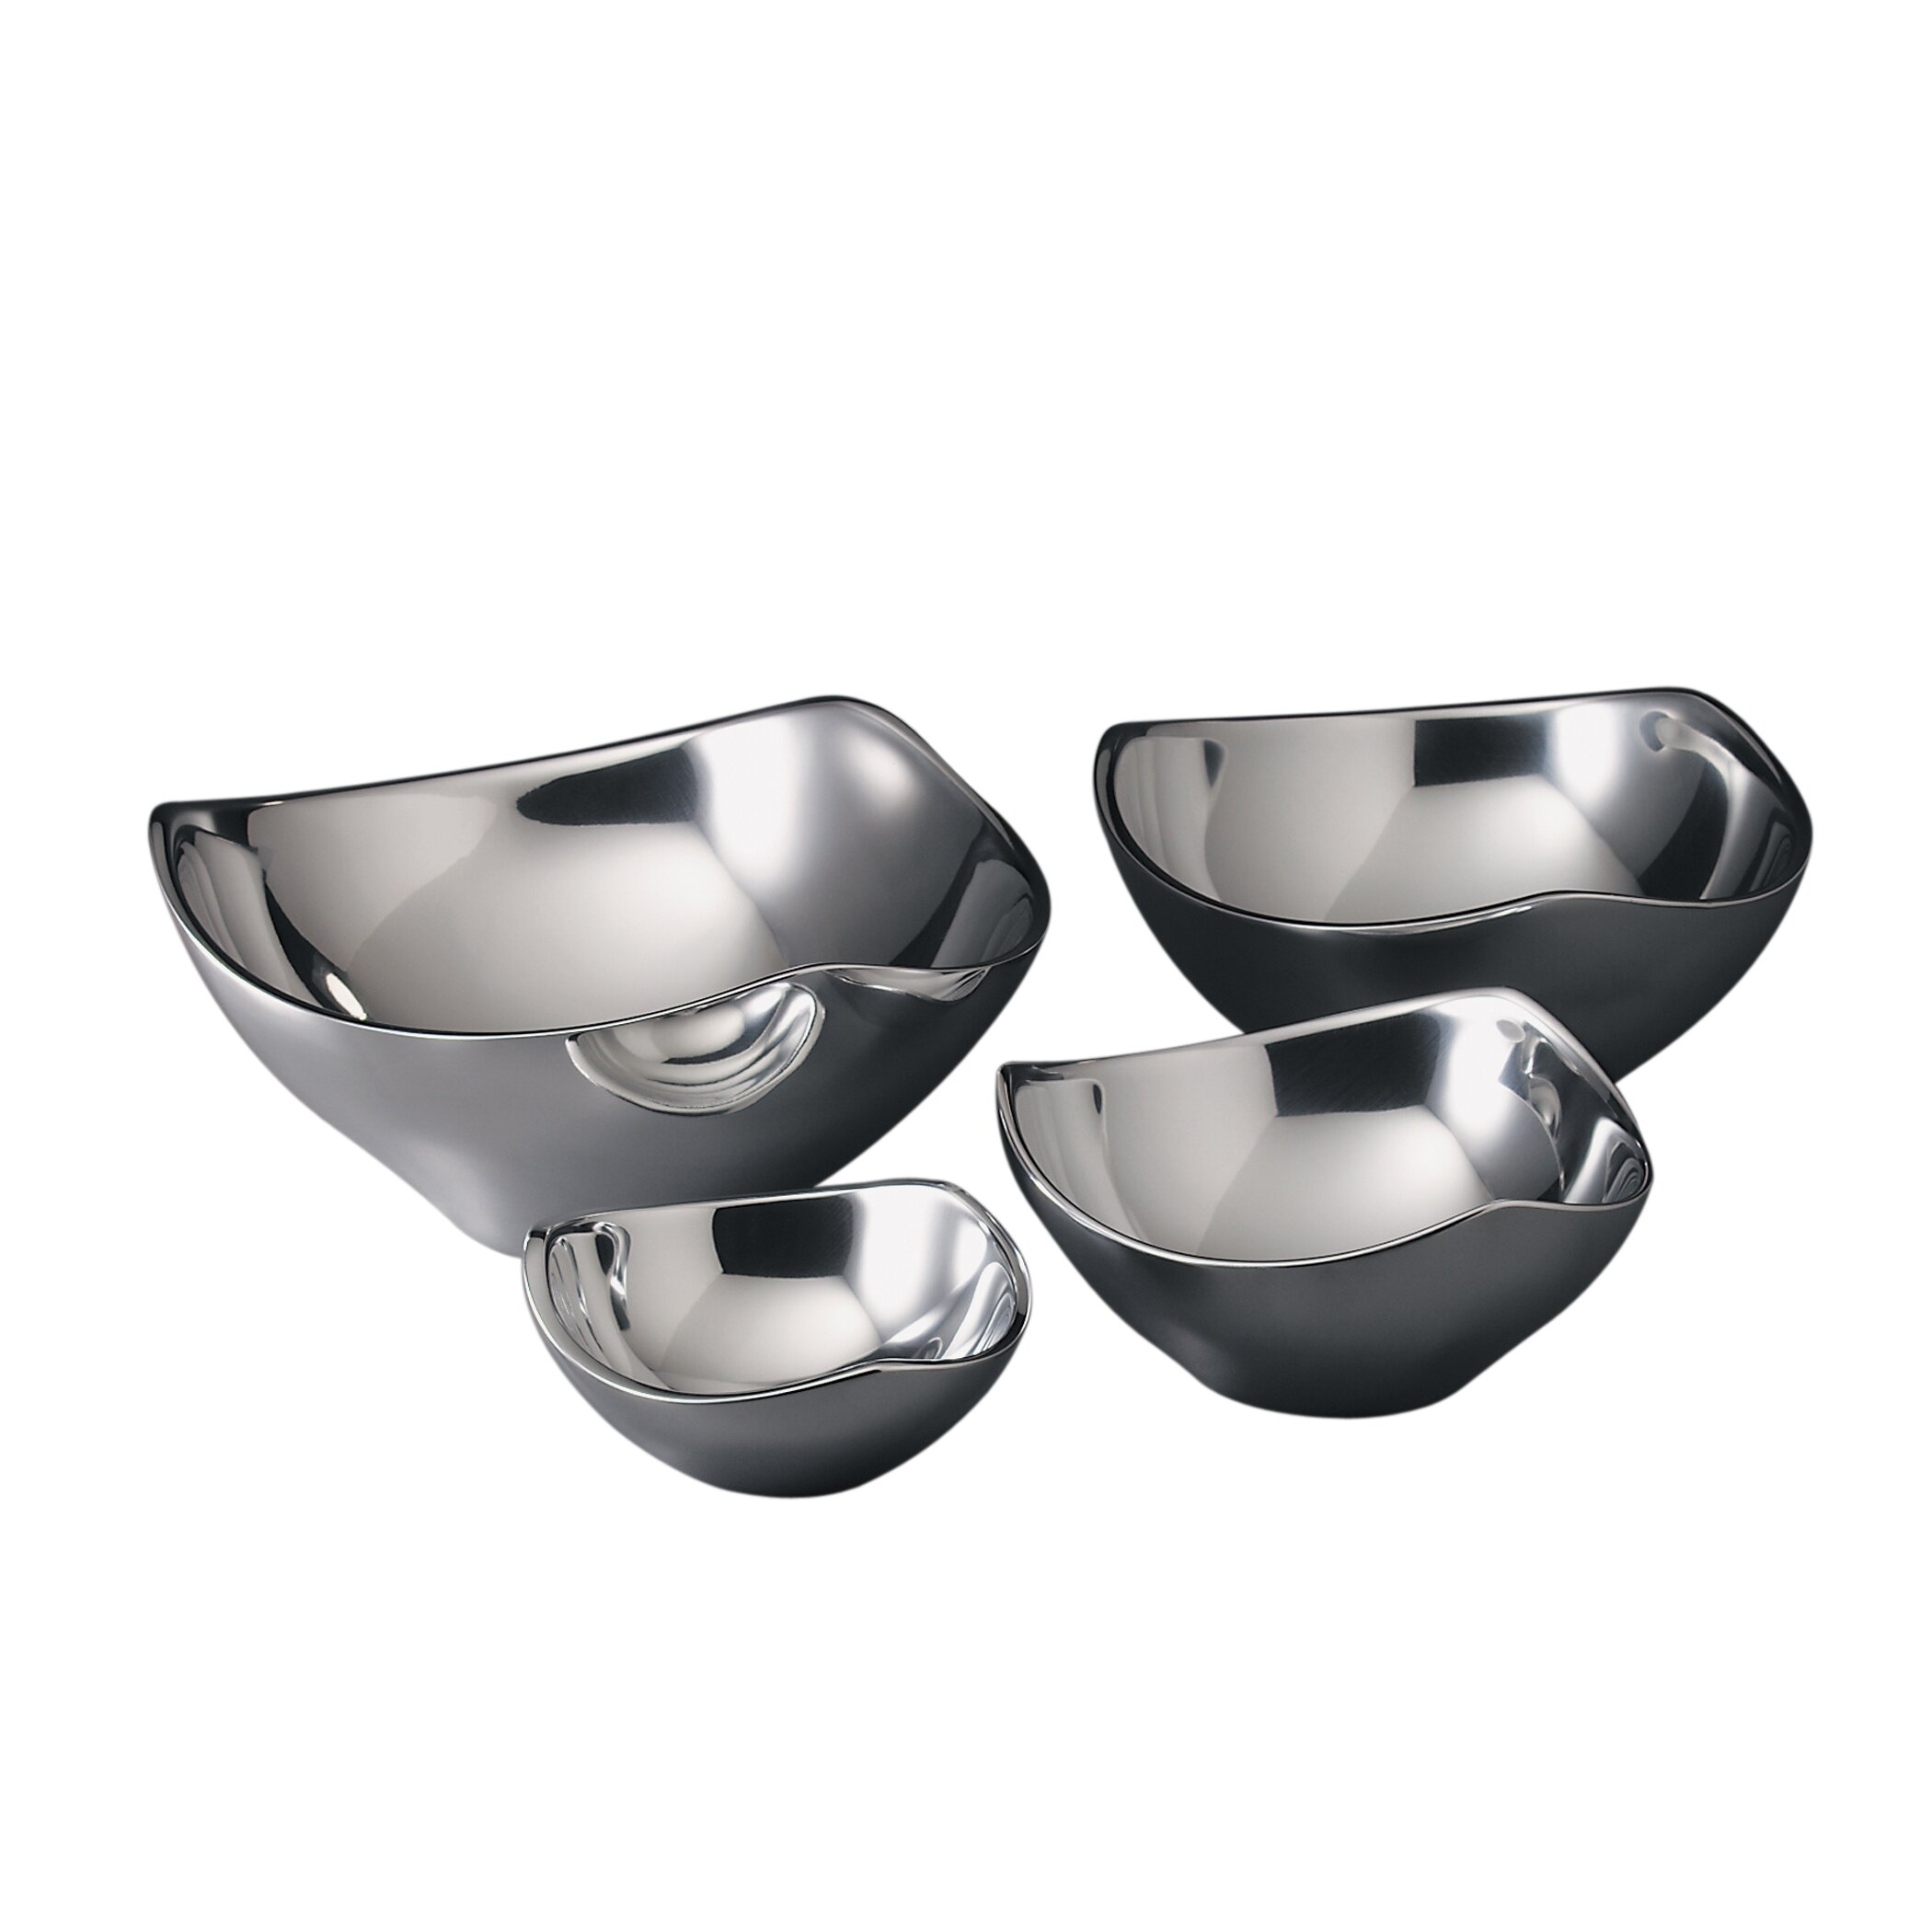 Nambe is a leading designer of kitchen utensils and other products, combining excellent style and quality since It has won countless awards for its design, including the Platinum ADEX Award for it fruit bowl, the Gold ADEX Award for its scoop server, and the Housewares Design Award for its kettle.